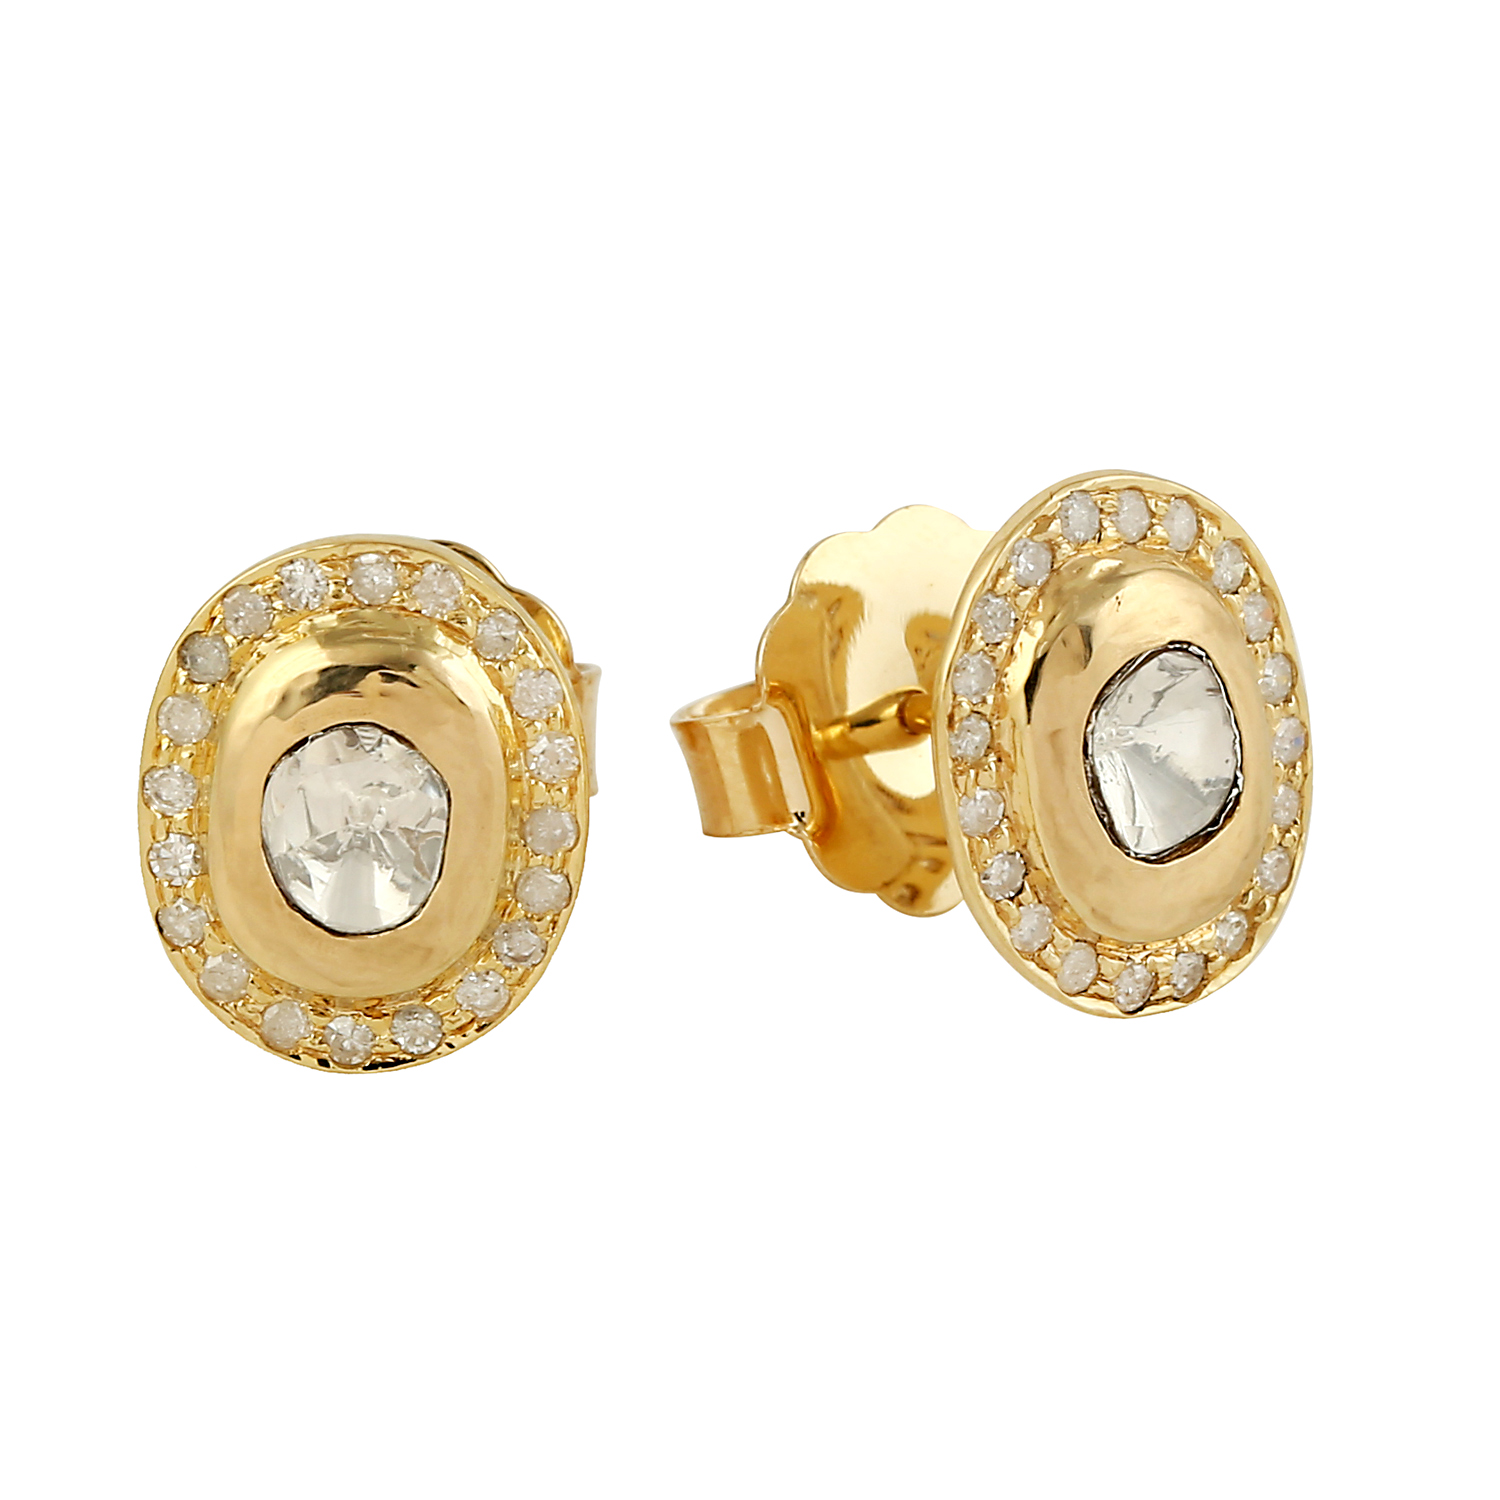 c42685269 Details about Valentine's Day Rose Cut Diamond 18k Yellow Gold Stud Earrings  Handmade Jewelry